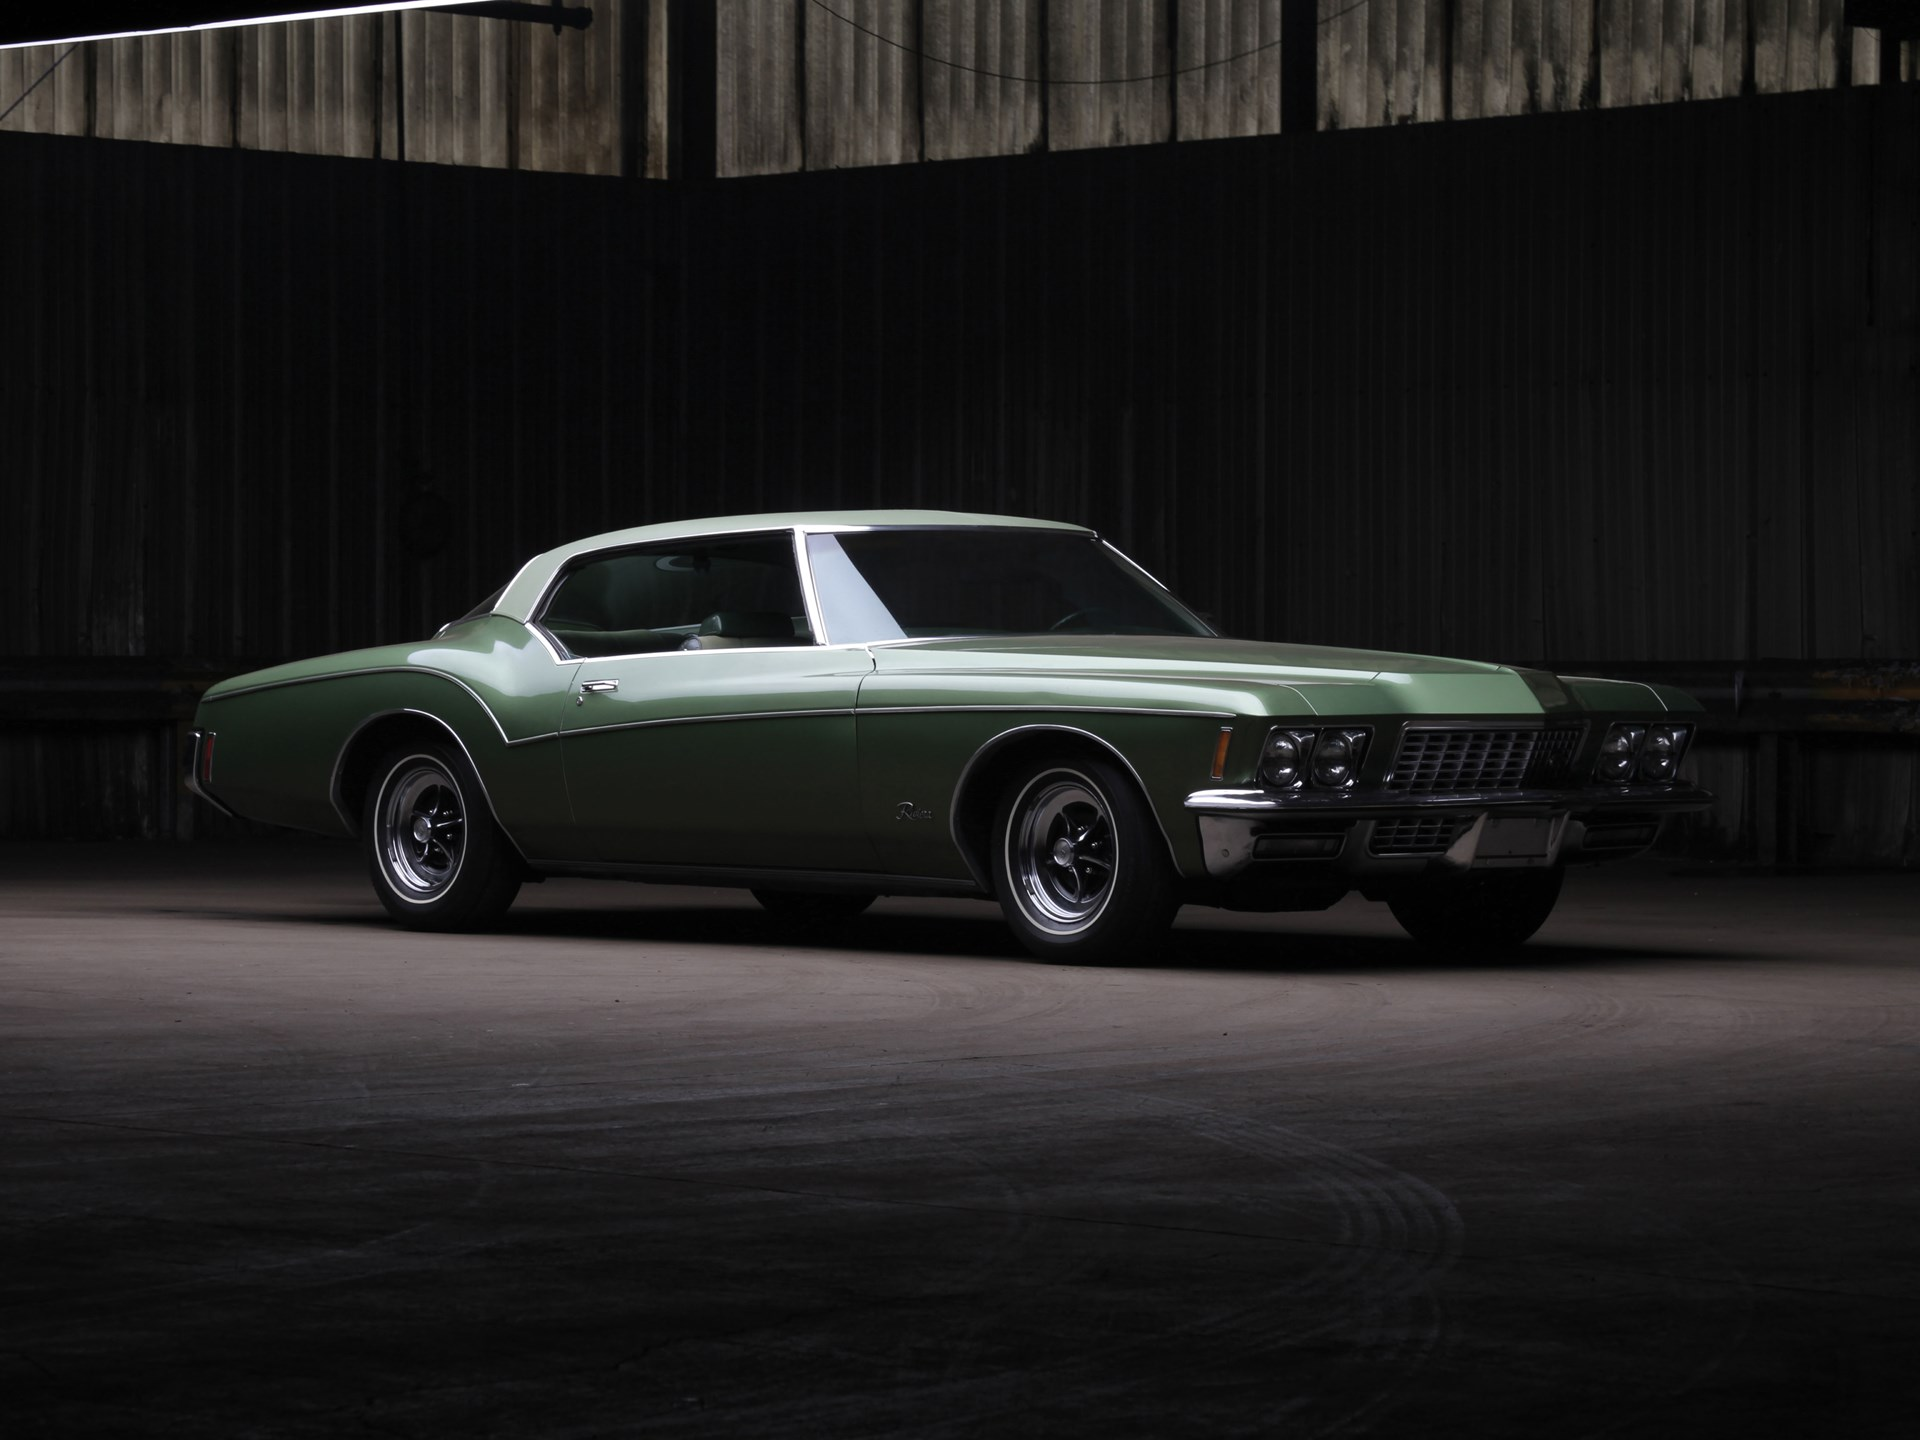 1972 Buick Riviera 3/4 front moody